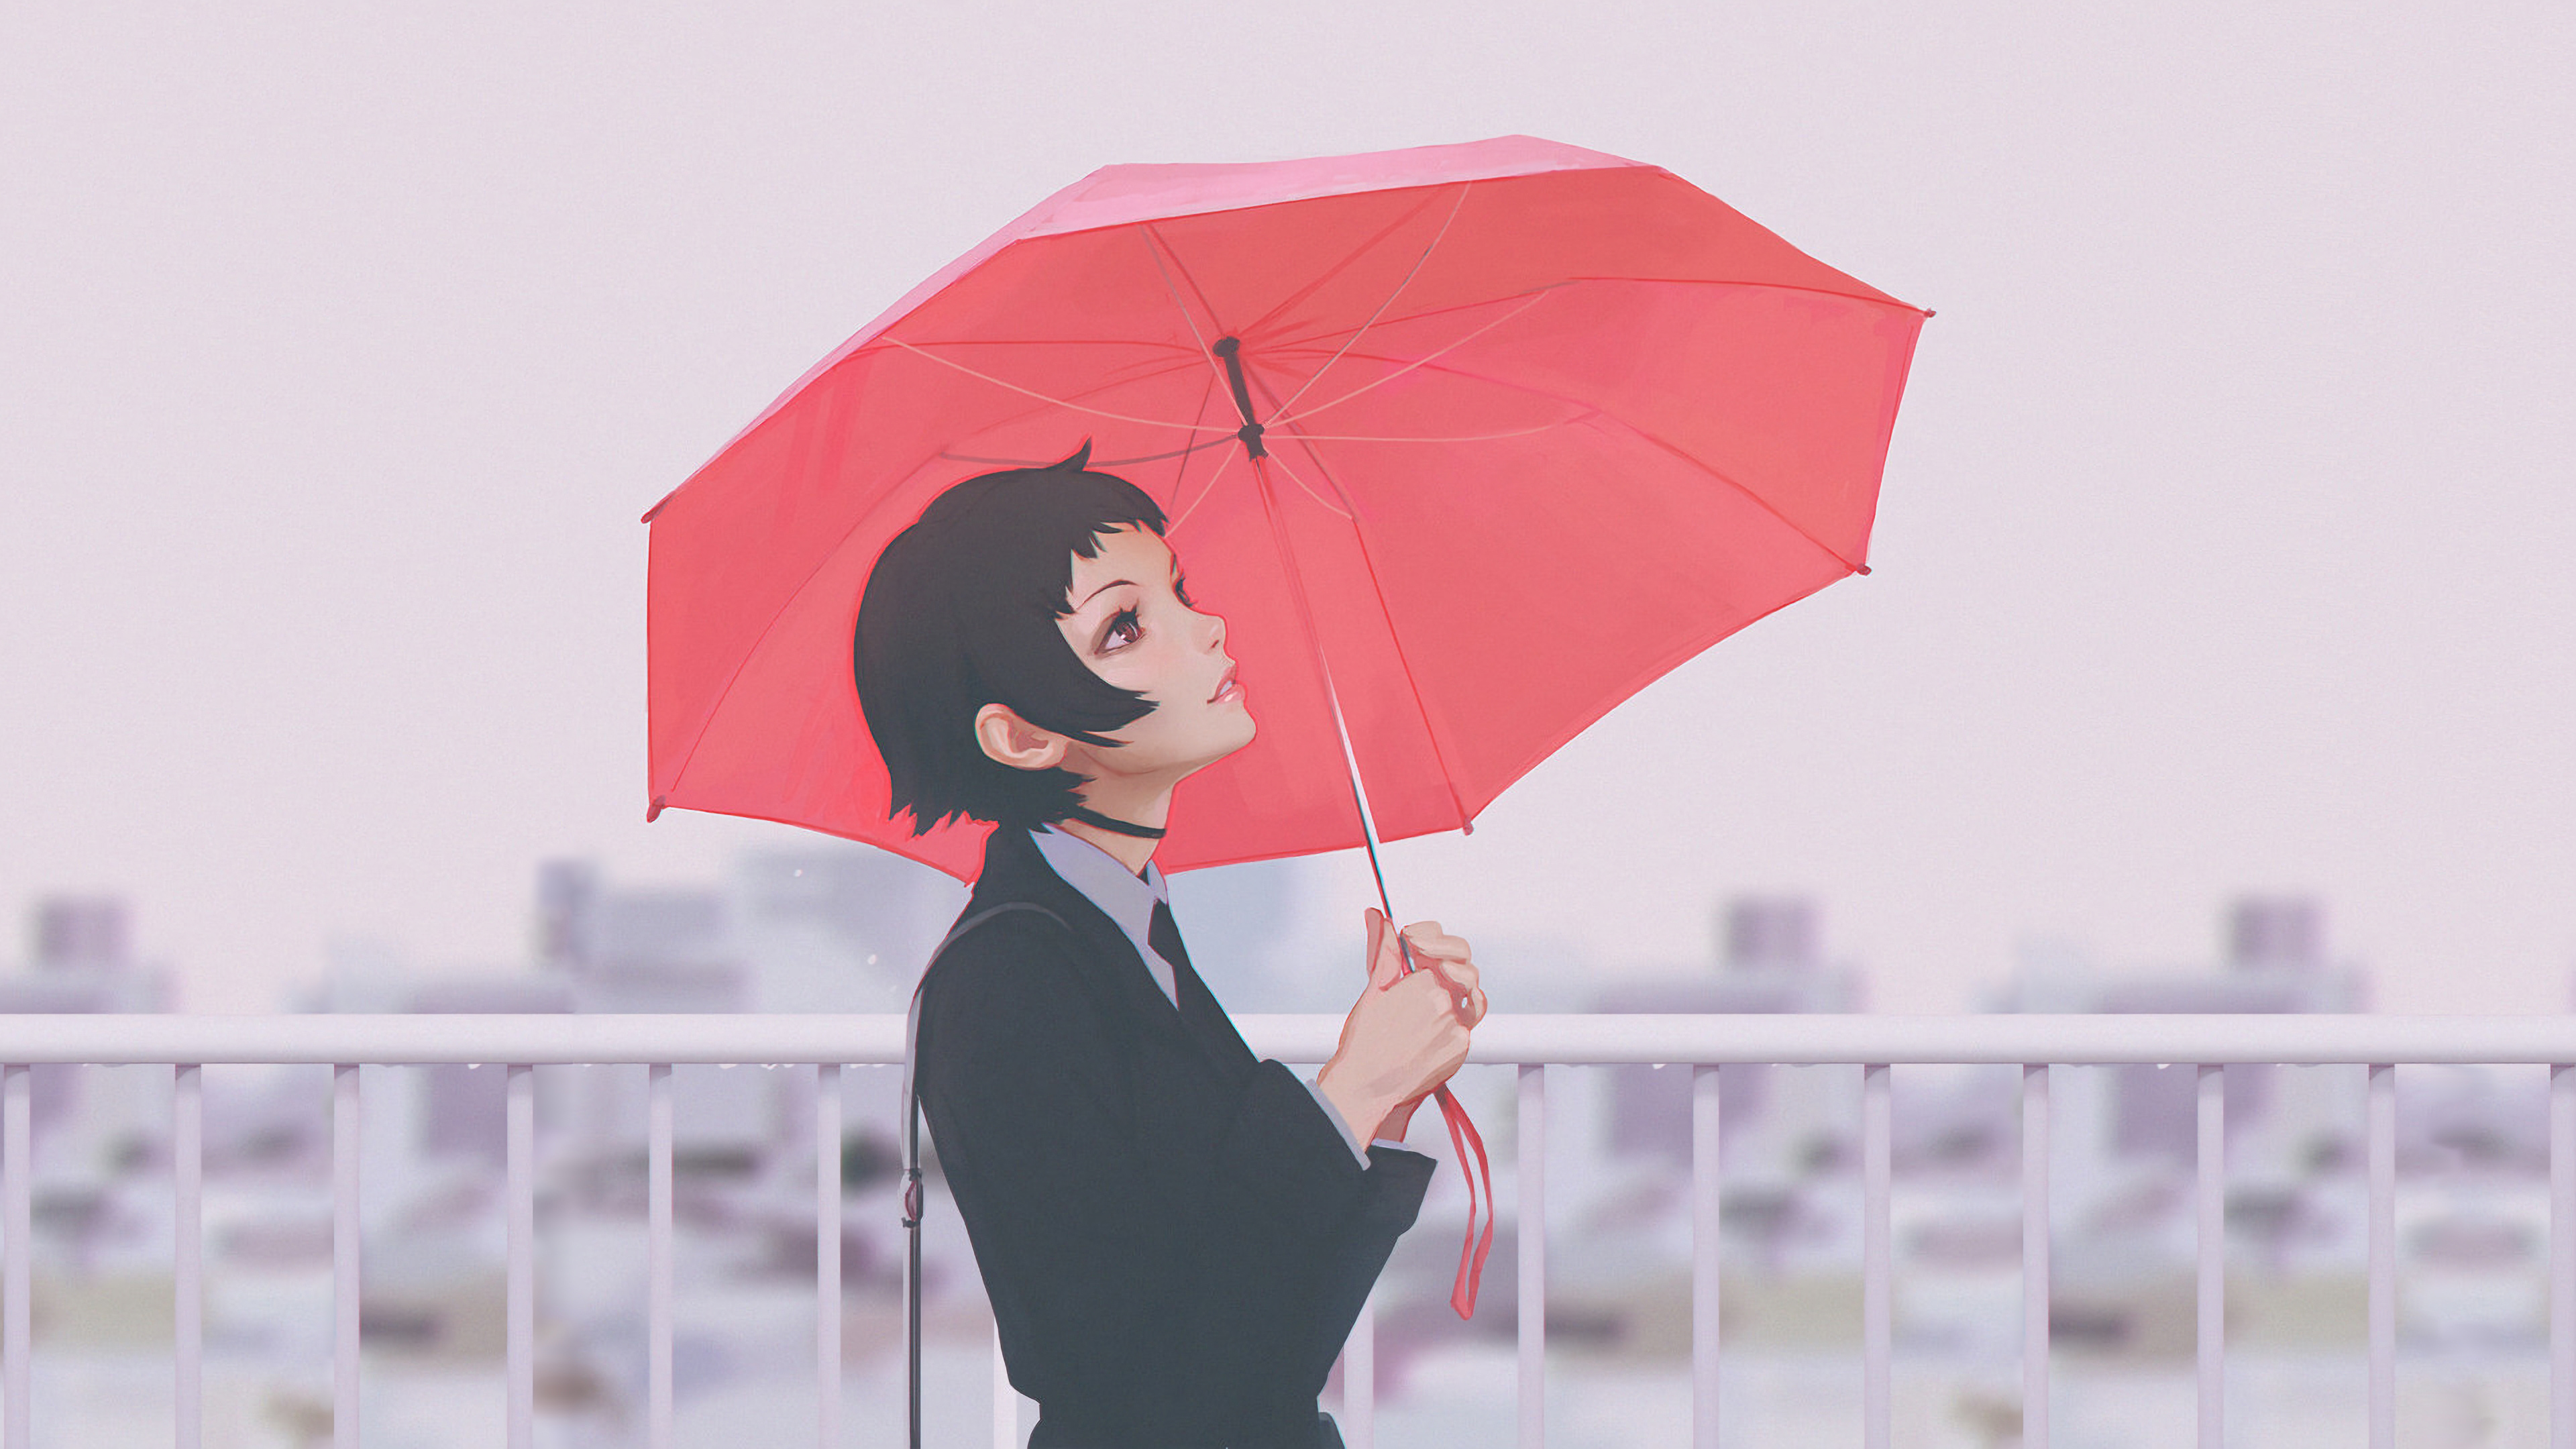 ilya kuvshinov anime girl with umbrella 1578253832 - Ilya Kuvshinov Anime Girl With Umbrella -